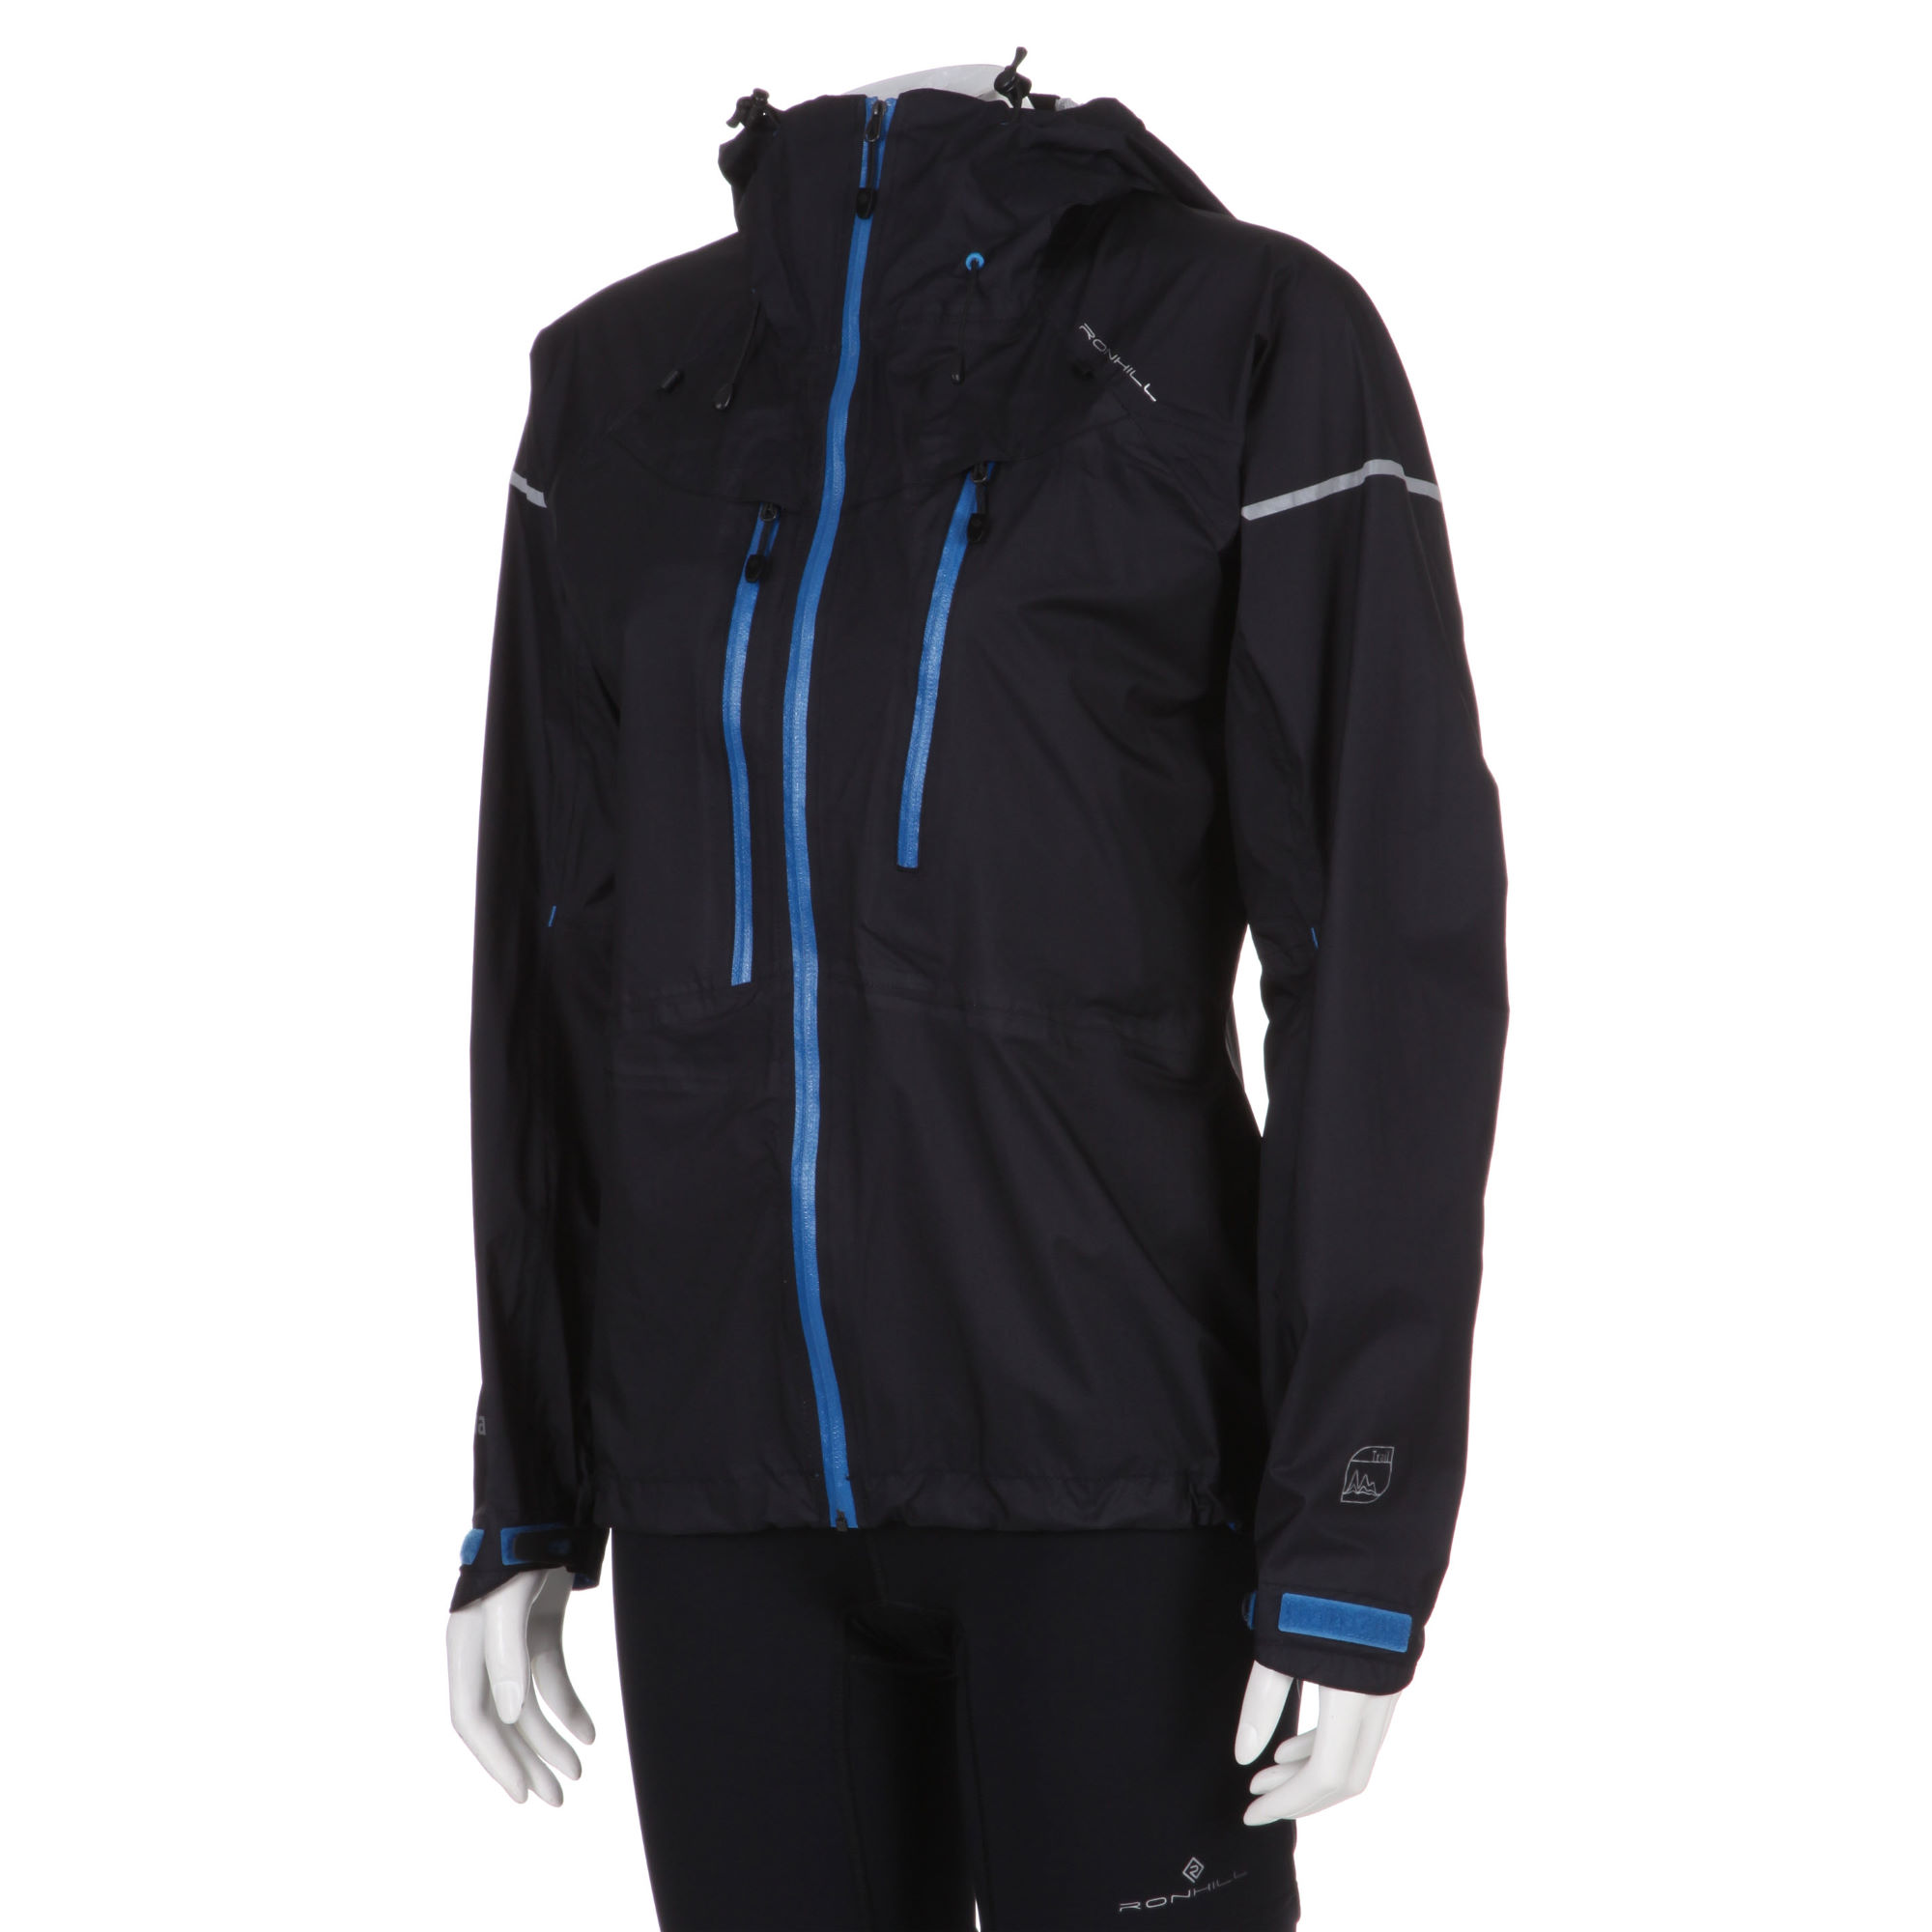 vestes de running imperm ables ronhill ladies trail tempest jacket aw12 wiggle france. Black Bedroom Furniture Sets. Home Design Ideas